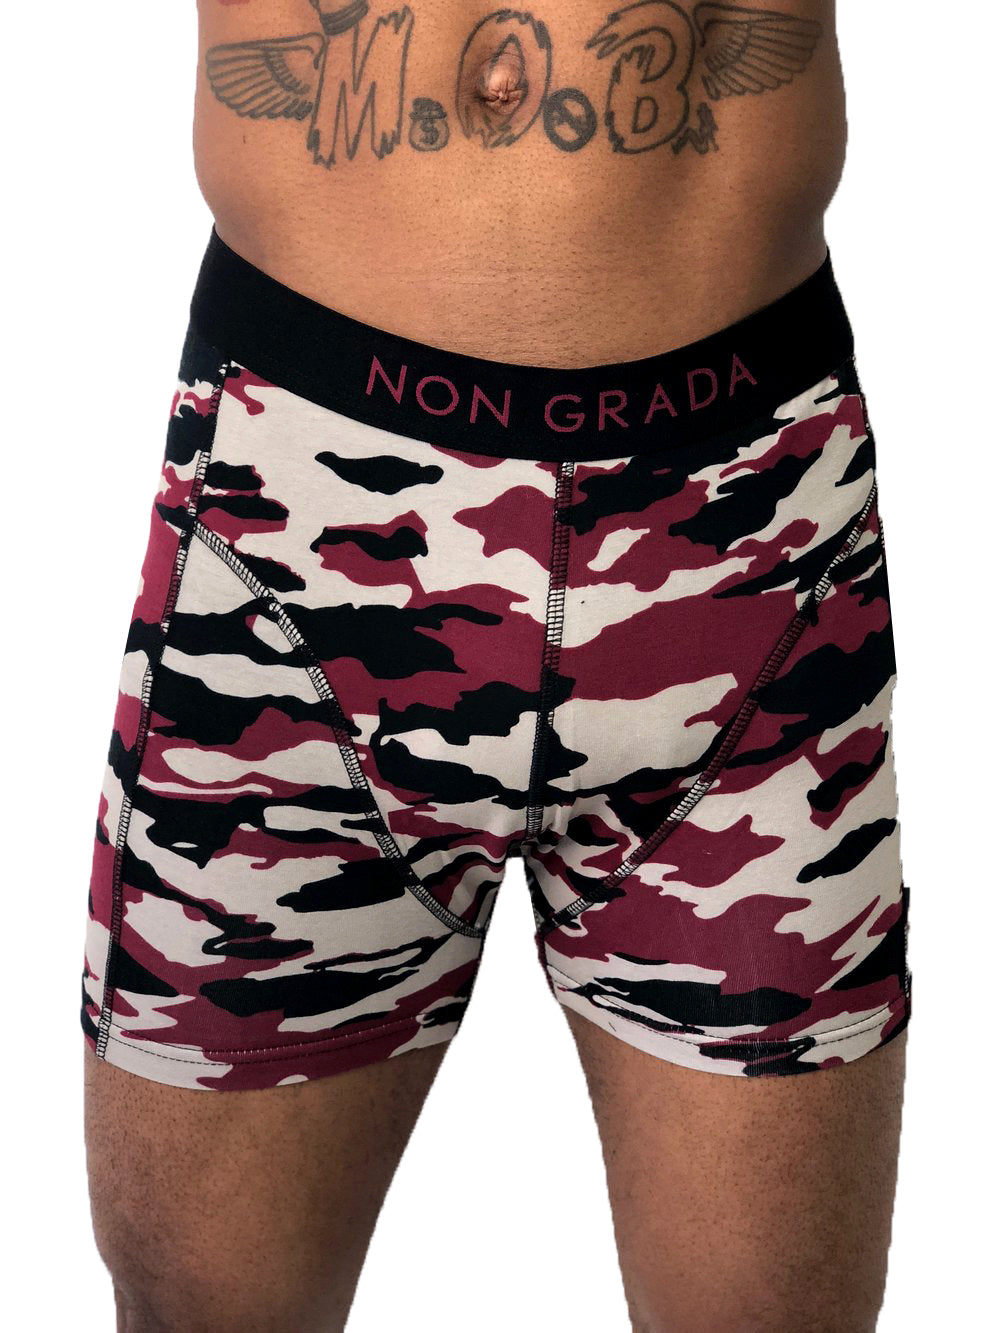 Men's Boxer Shorts By Non Grada